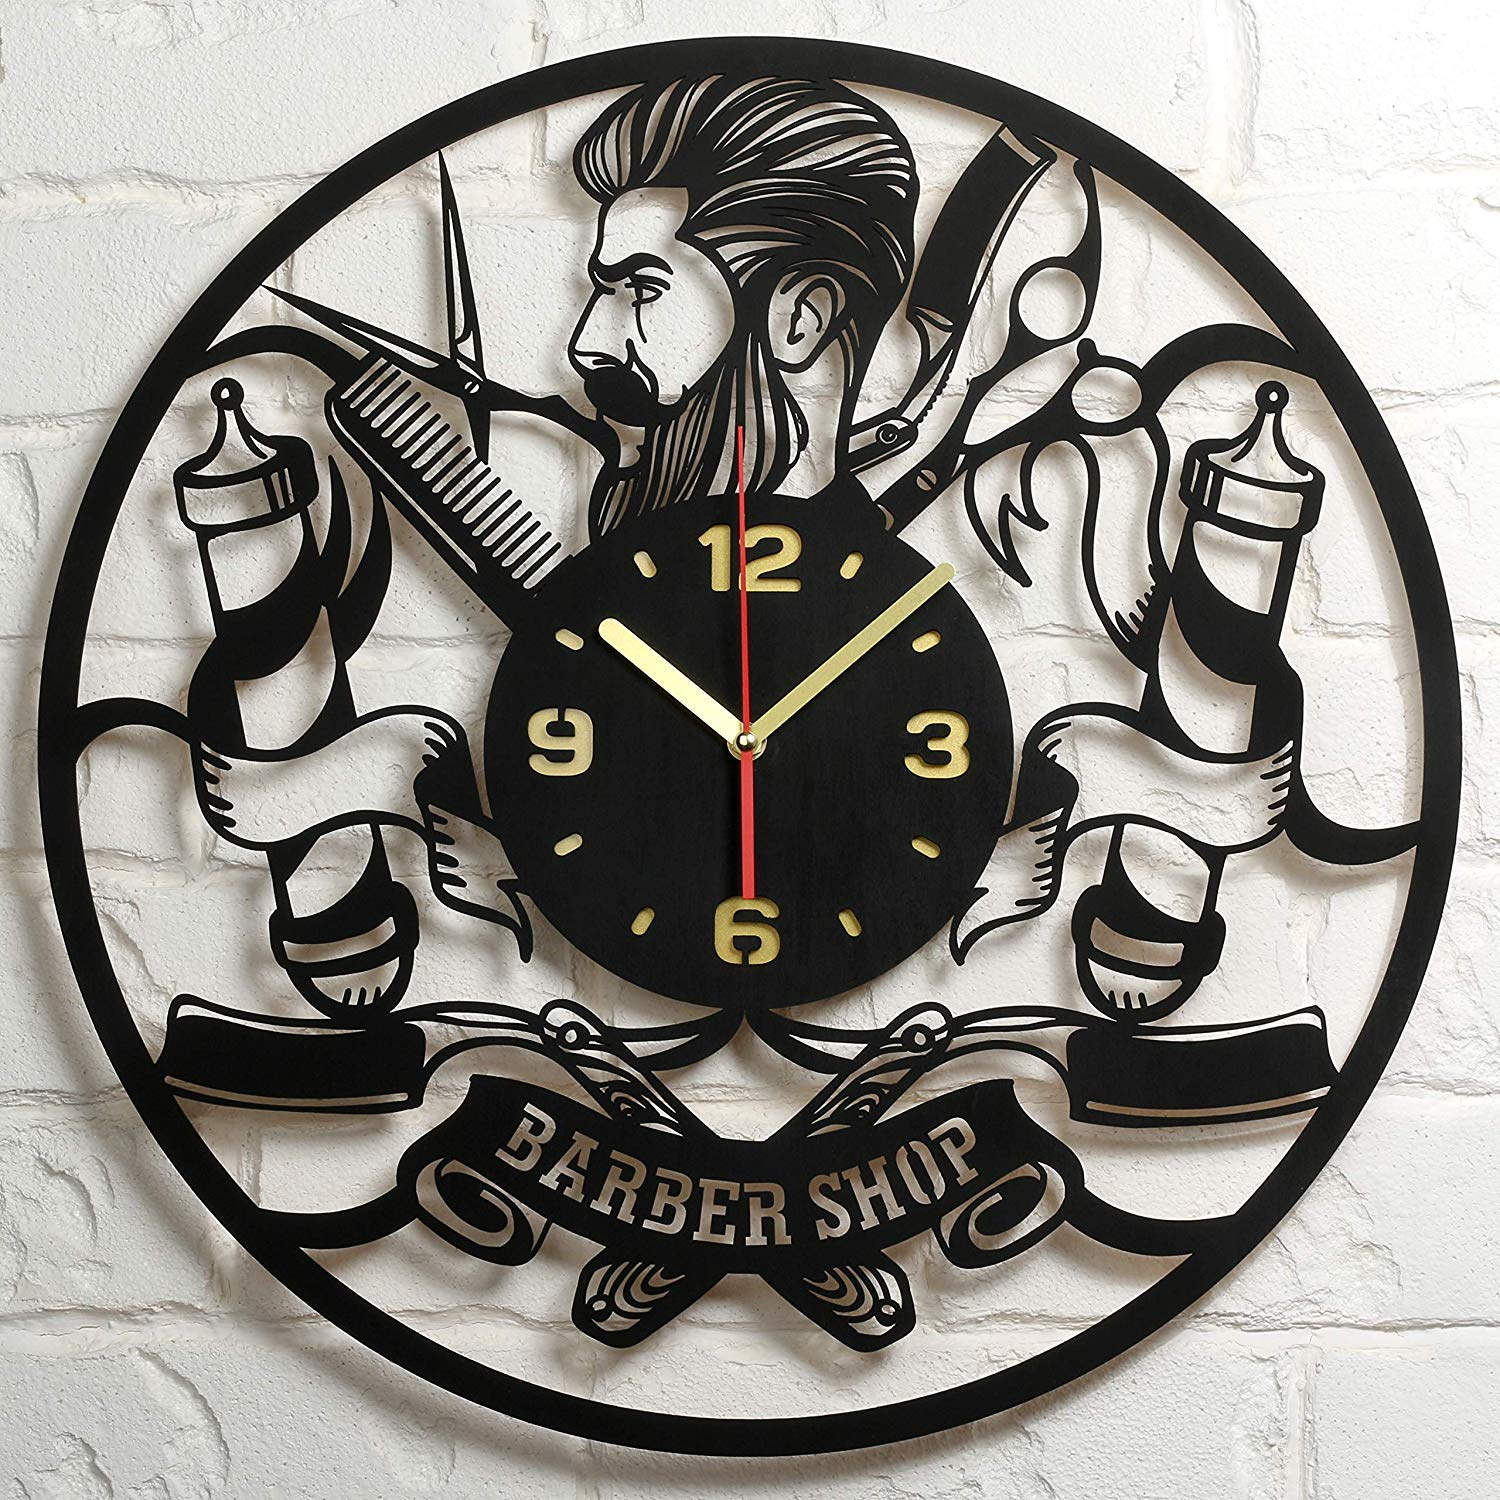 Barbershop Clock Large Wood Wall Clock 20 Inch Hairdresser Barber Clock Hair Stylist Hair Salon Gifts for Women Men Barbers Retro Vintage Old Barber Shop Wall Decor Art Decorations Clock Gift Black